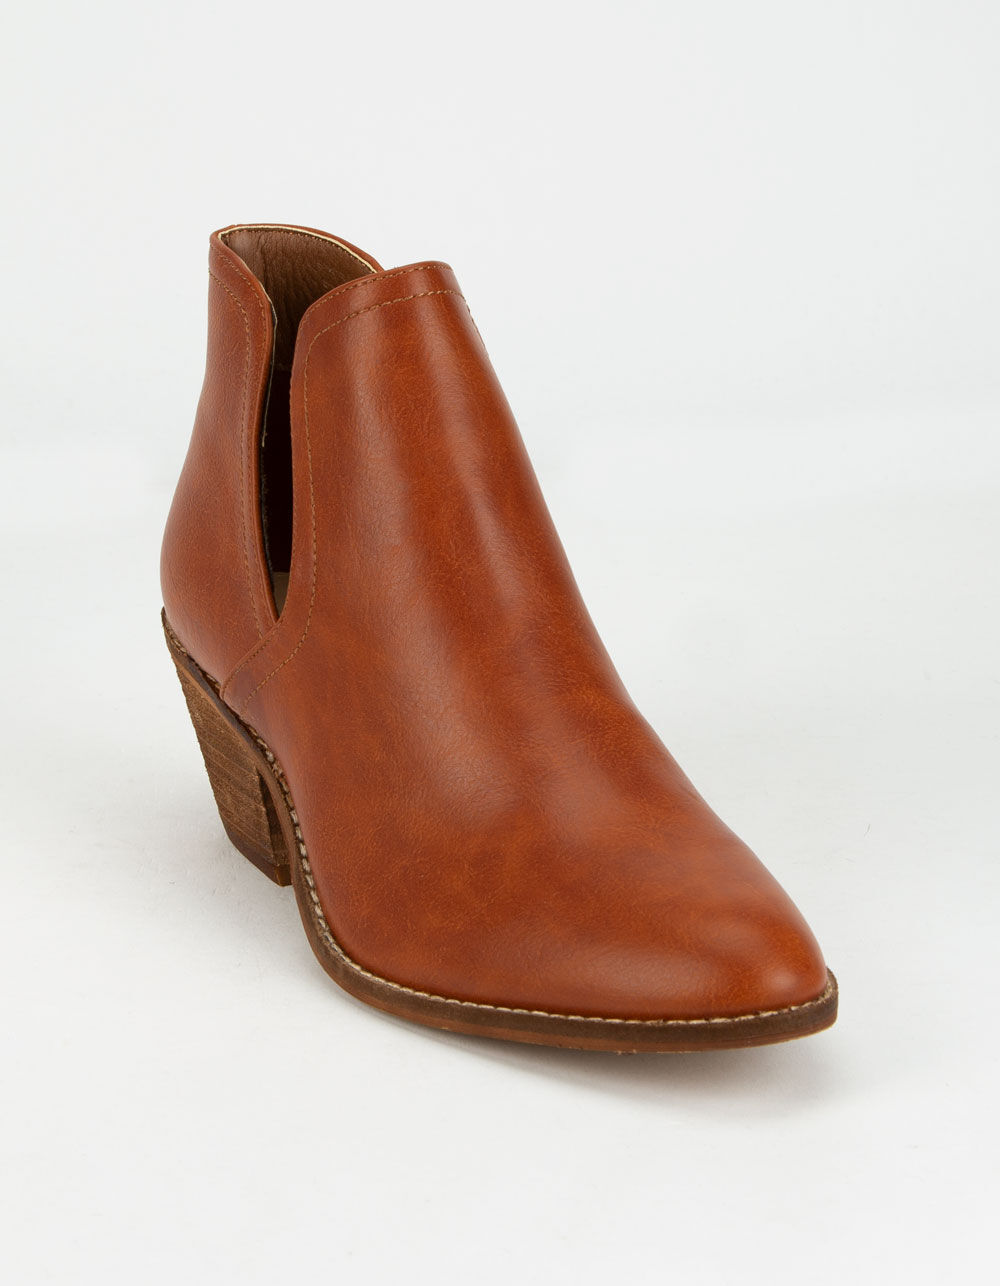 BEAST FASHION Chop Out Cognac Booties